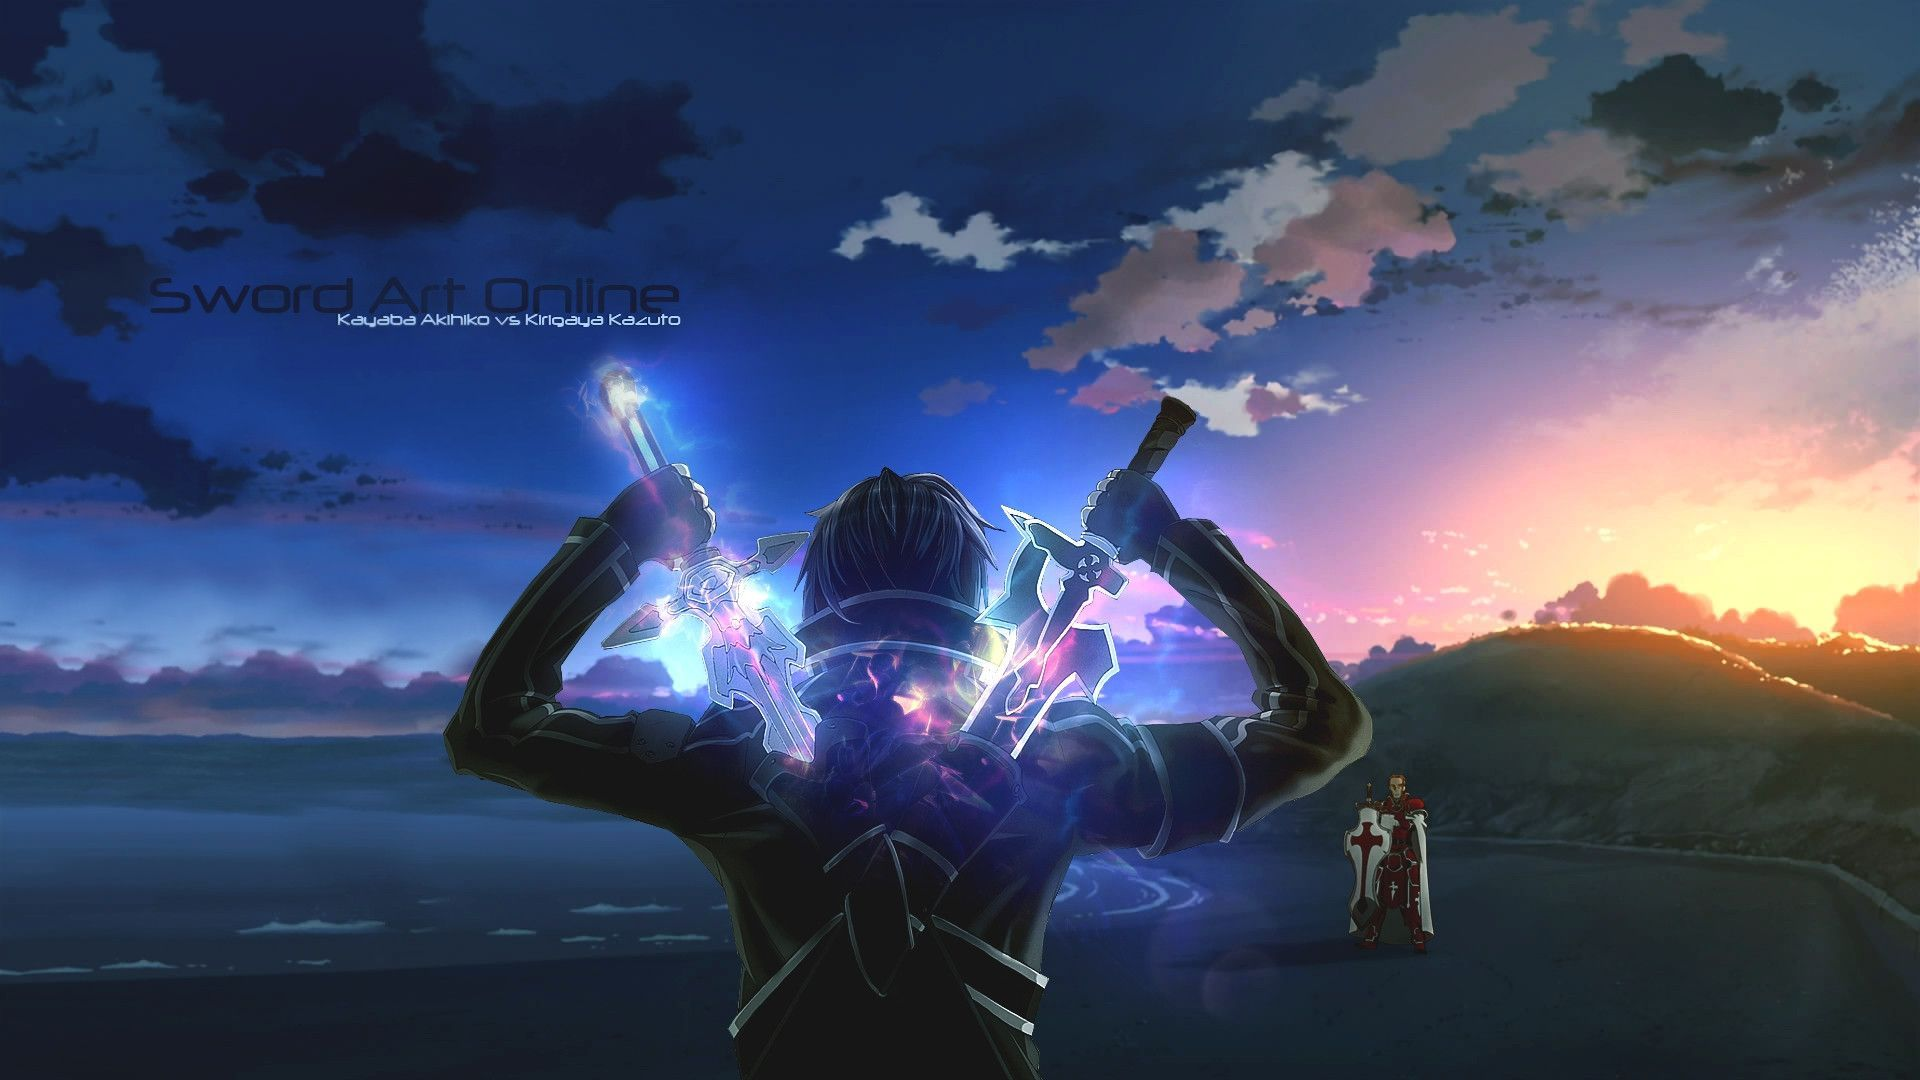 Epic anime backgrounds free download pixelstalk net - Anime images download ...